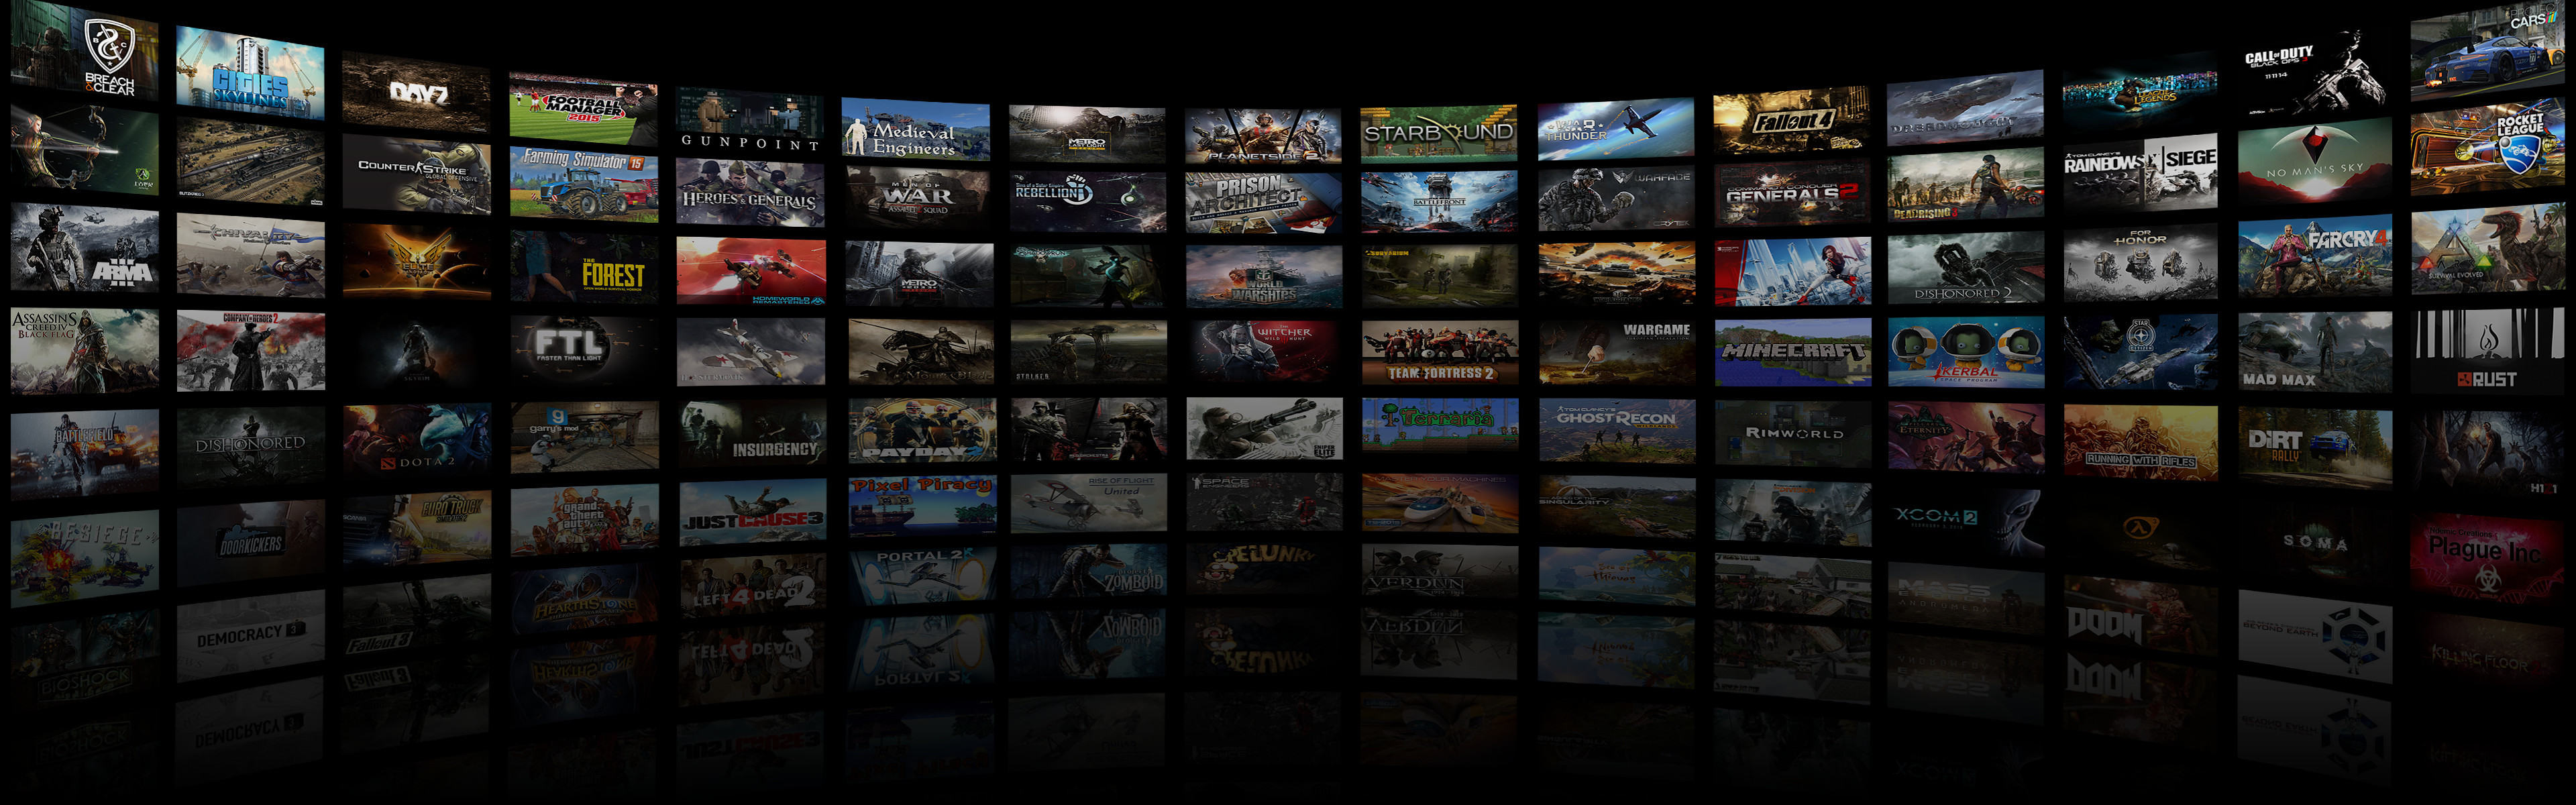 3840x1200 ... Dual Monitor Game Montage Wallpaper 2 by DarkXess